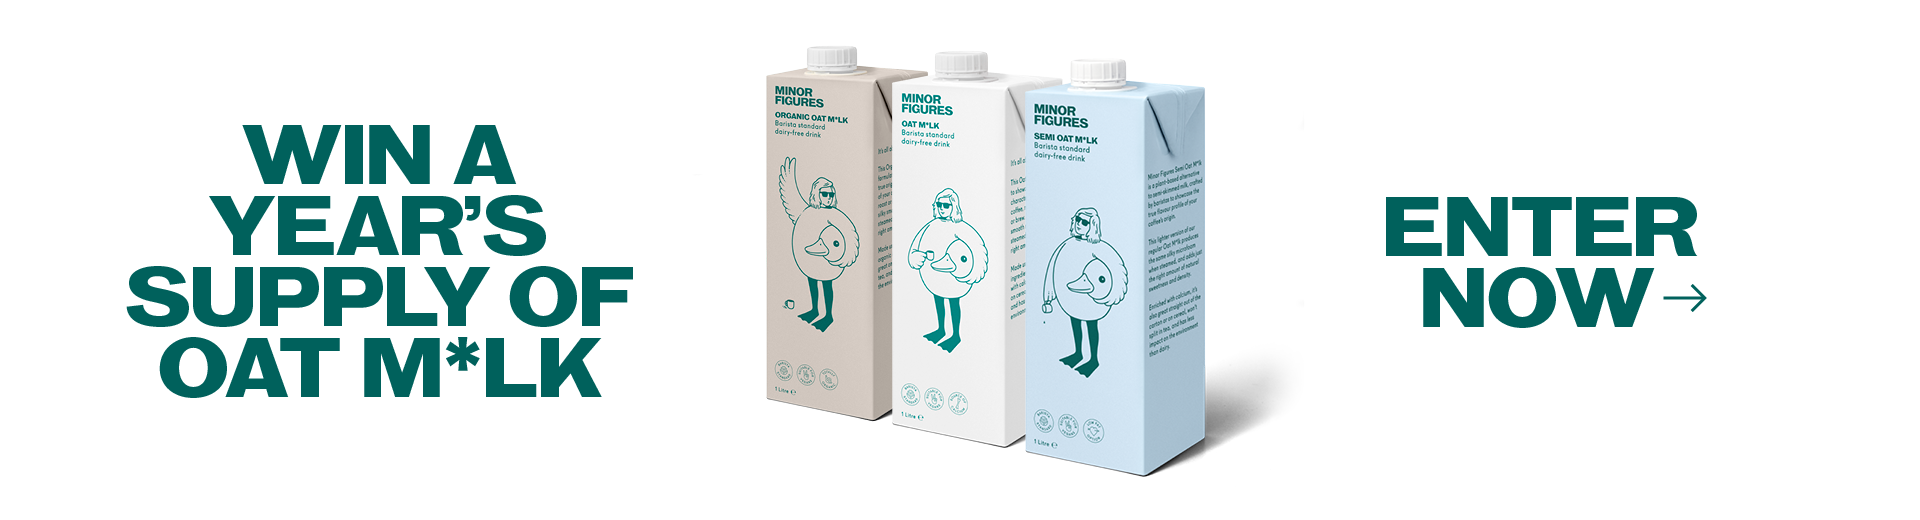 Win a Year's Supply of Oat Milk